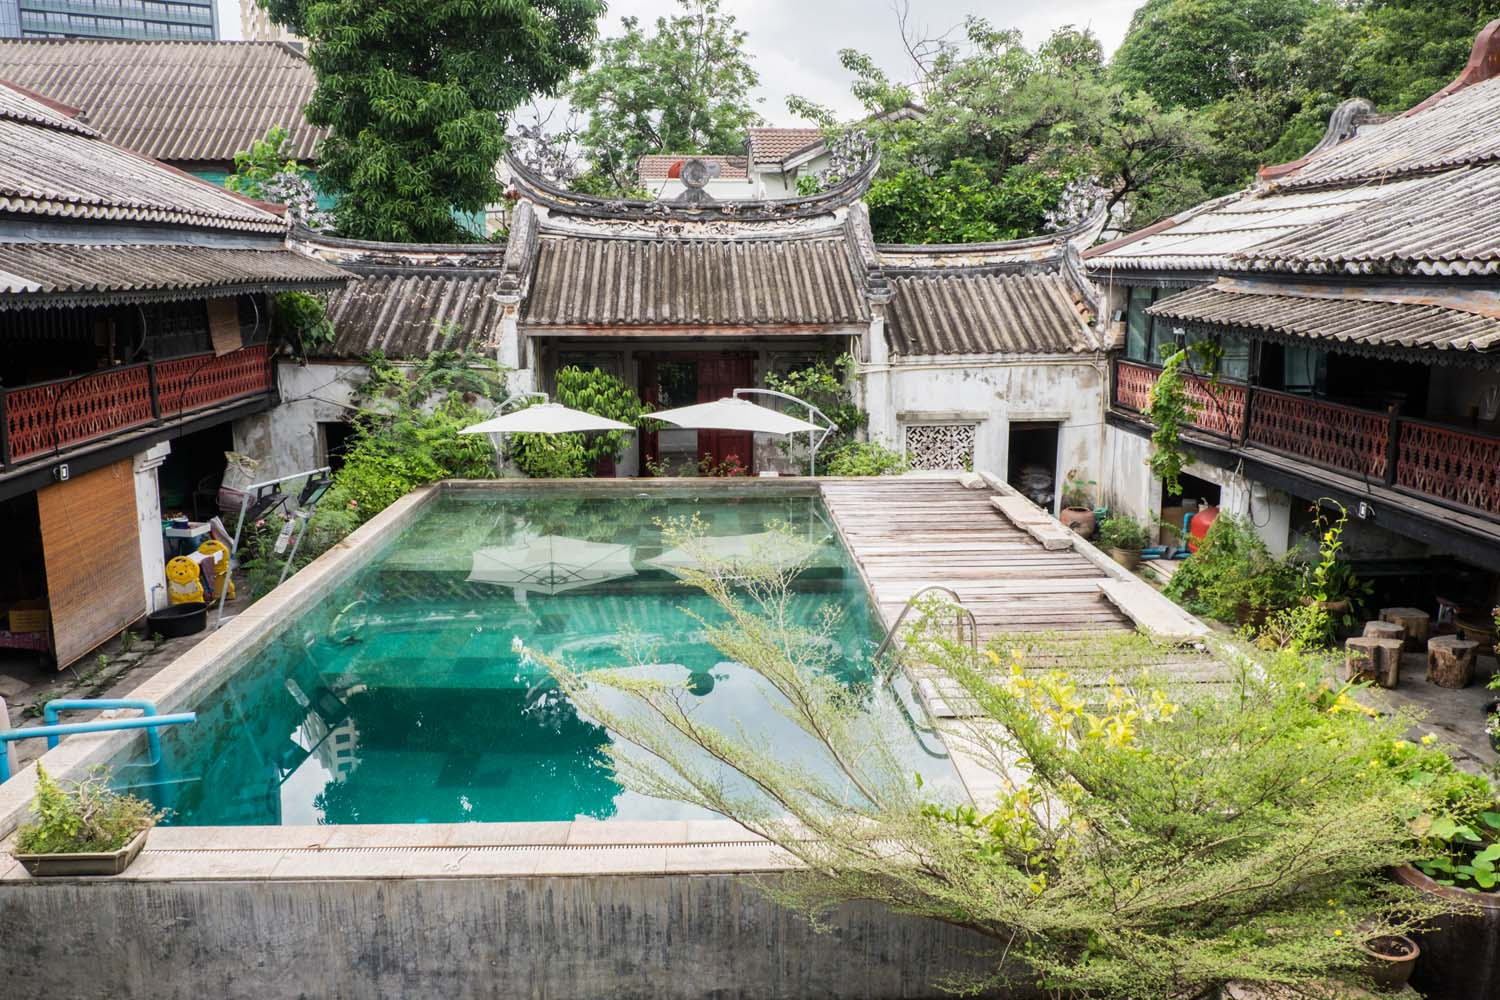 What to do in Chinatown, Bangkok - explore the old Talad Noi community, find great places to eat Chinese food & authentic guesthouses to stay.